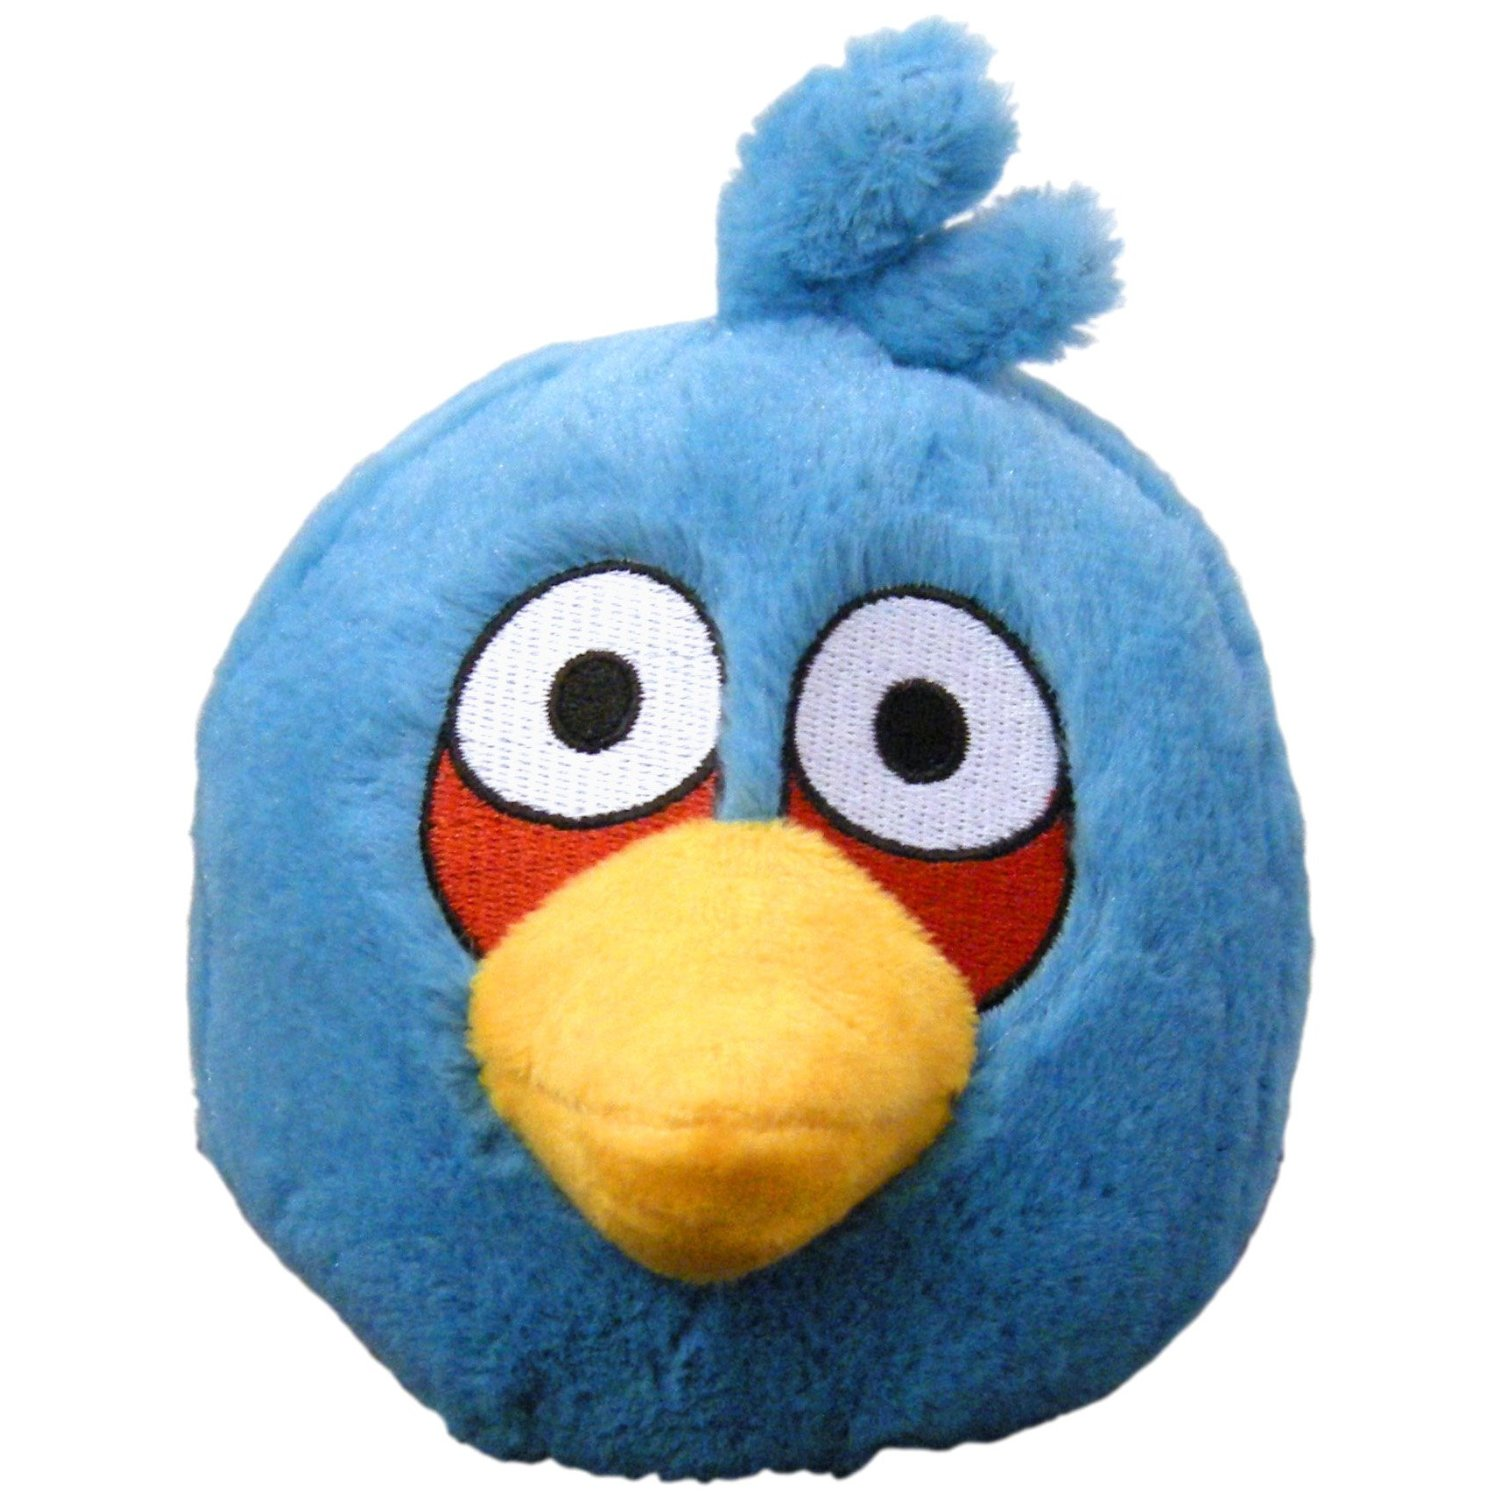 Homewarming Gift Angry Birds 5 Quot Plush Blue Bird With Sound Gift Ideas